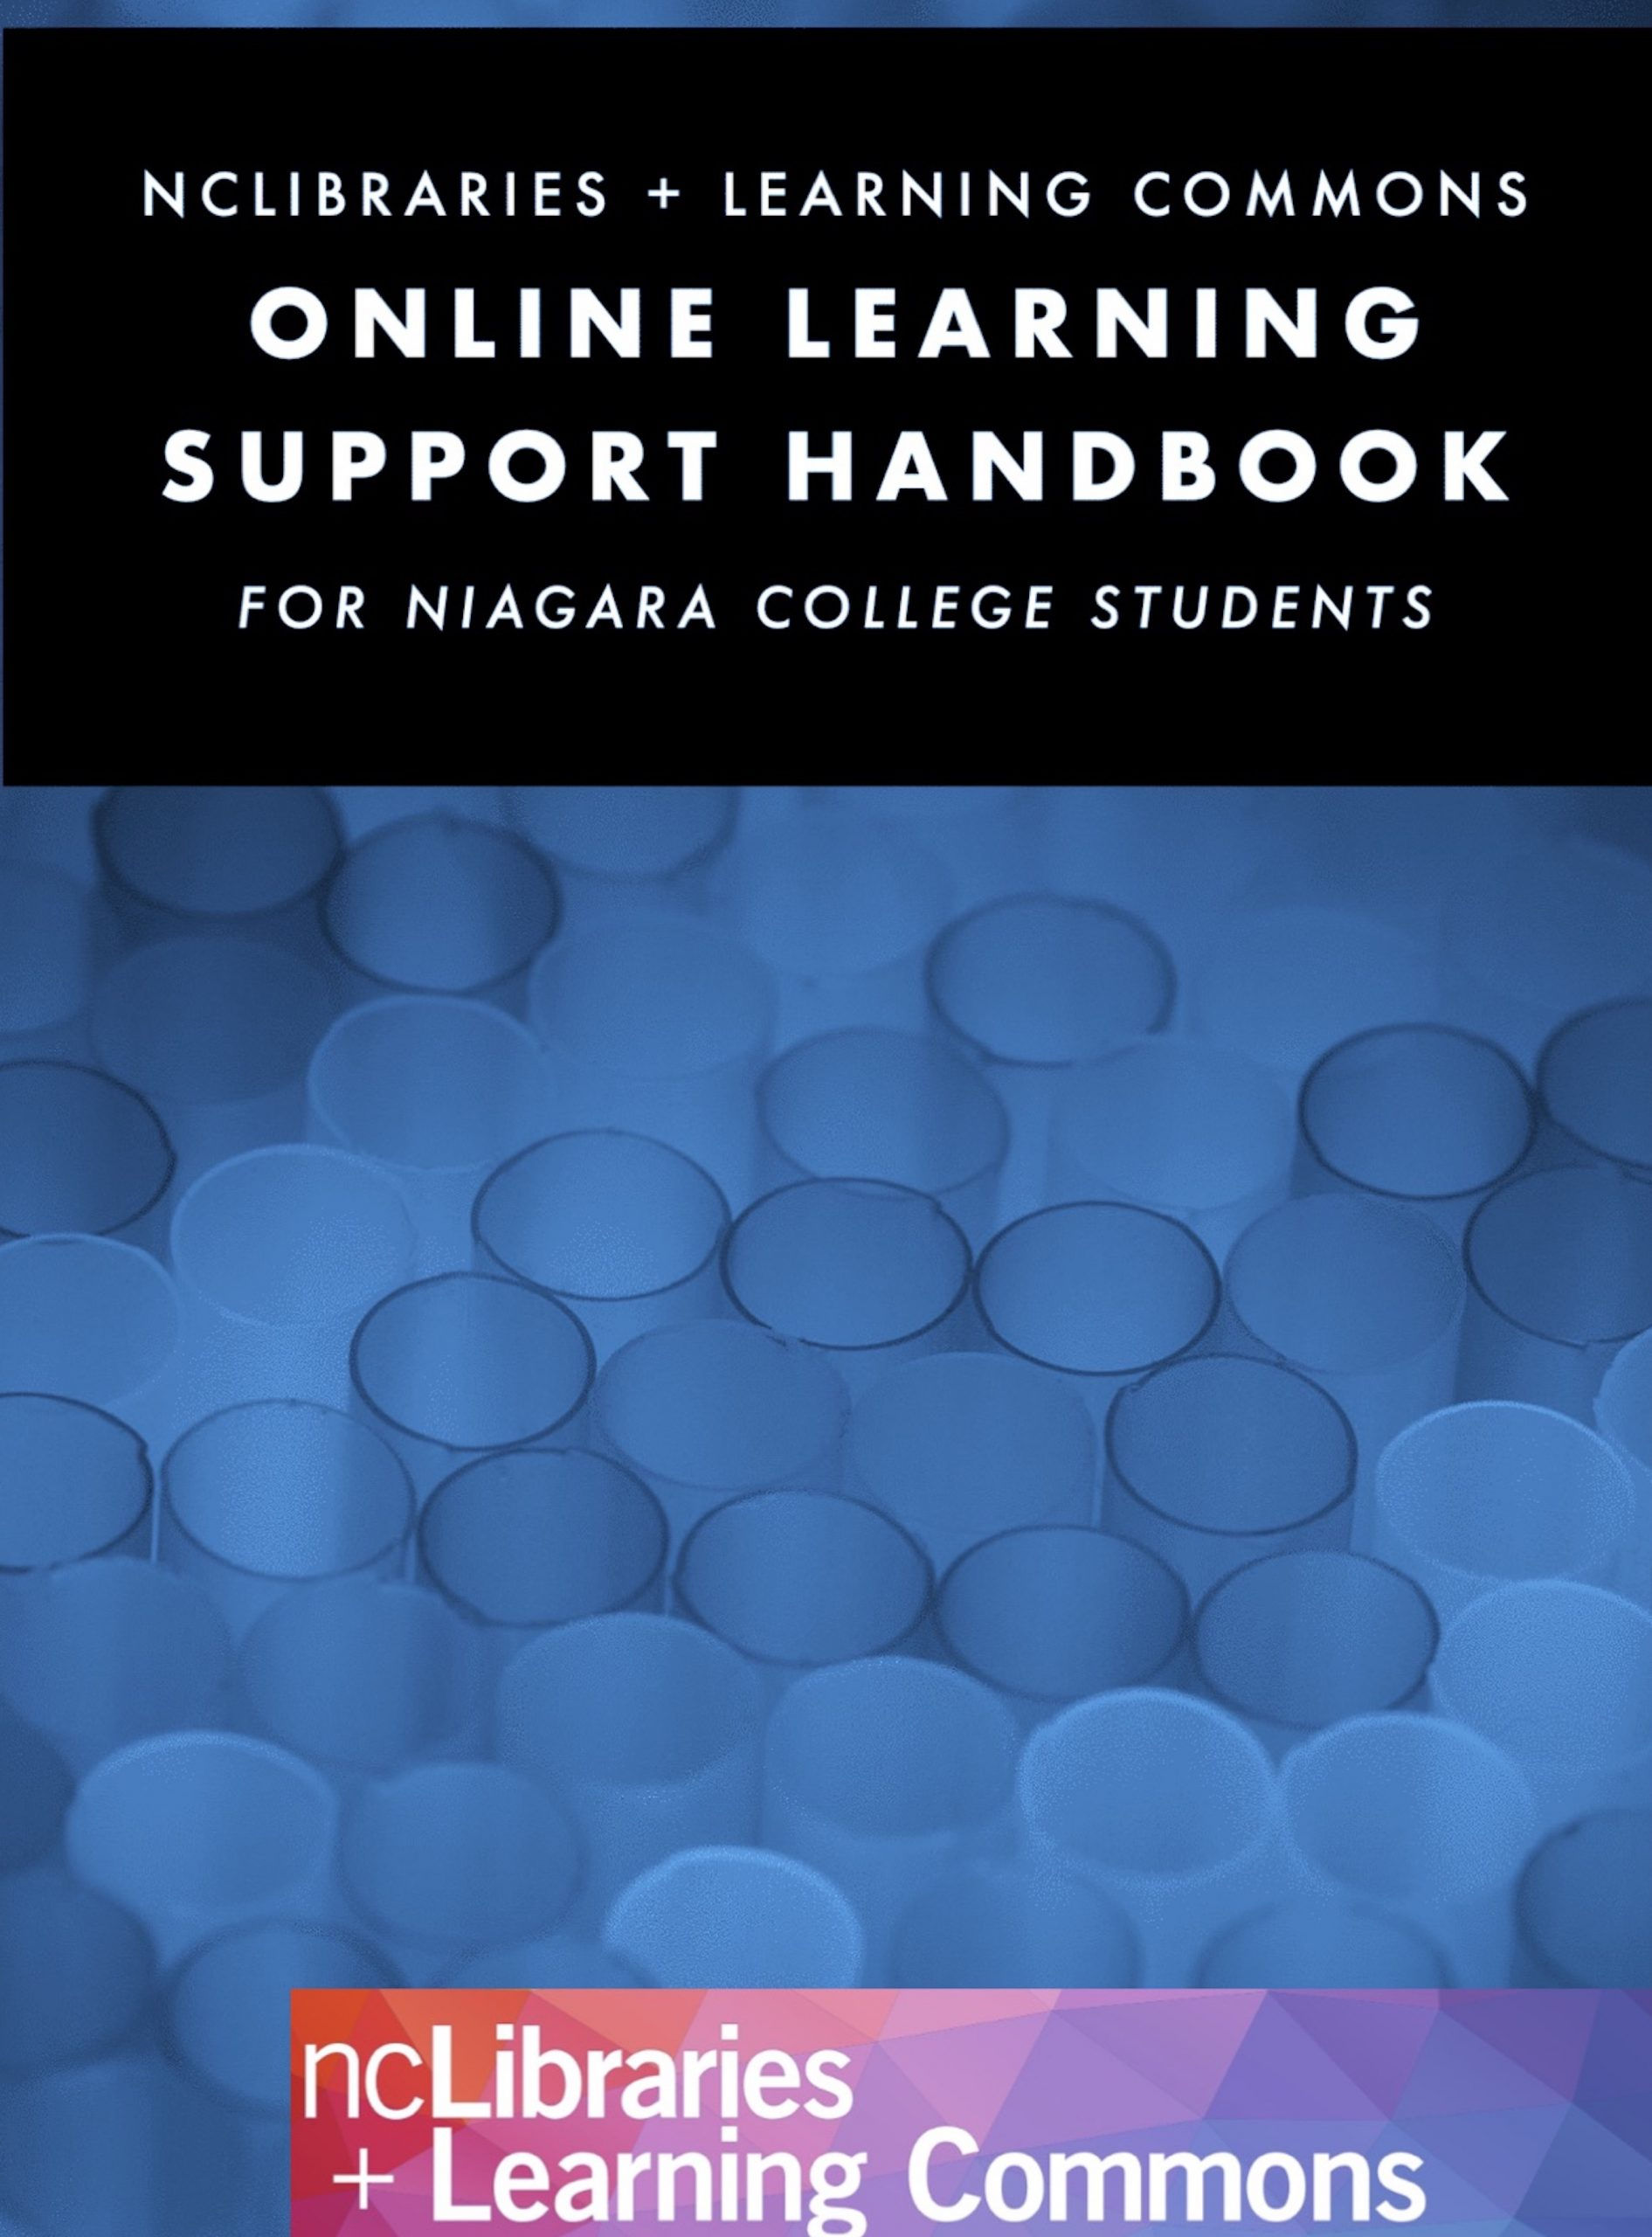 Cover image for Niagara College Libraries + Learning Commons Online Learning Support Handbook